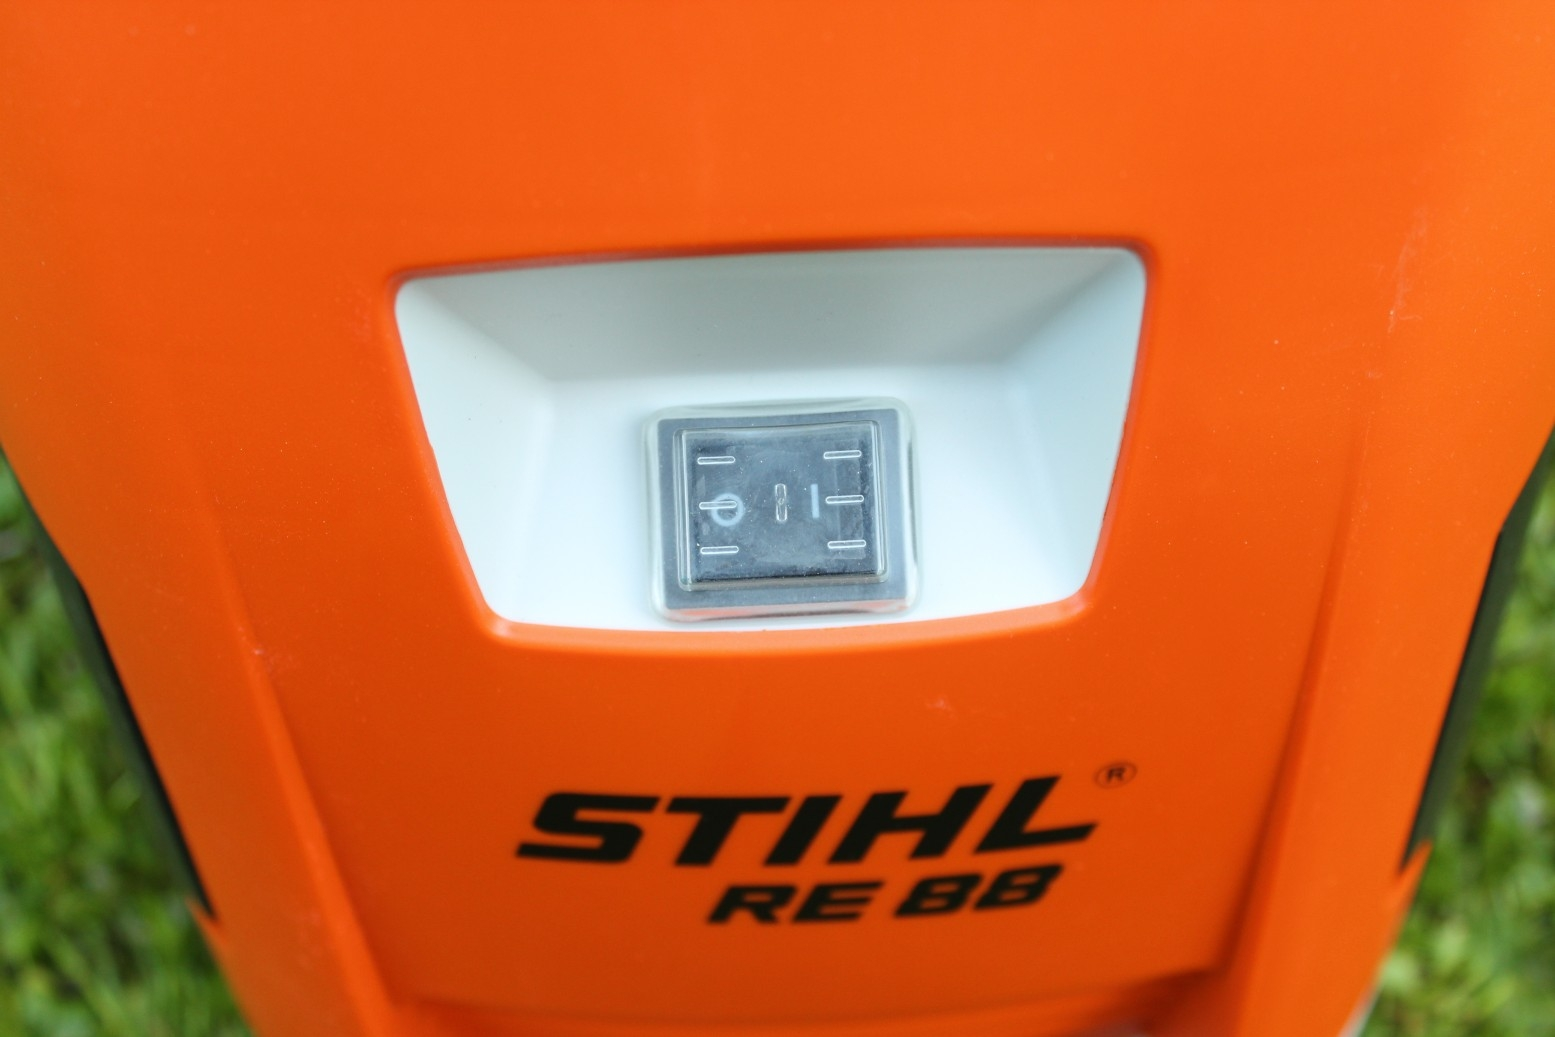 stihl pressure washer review (3)